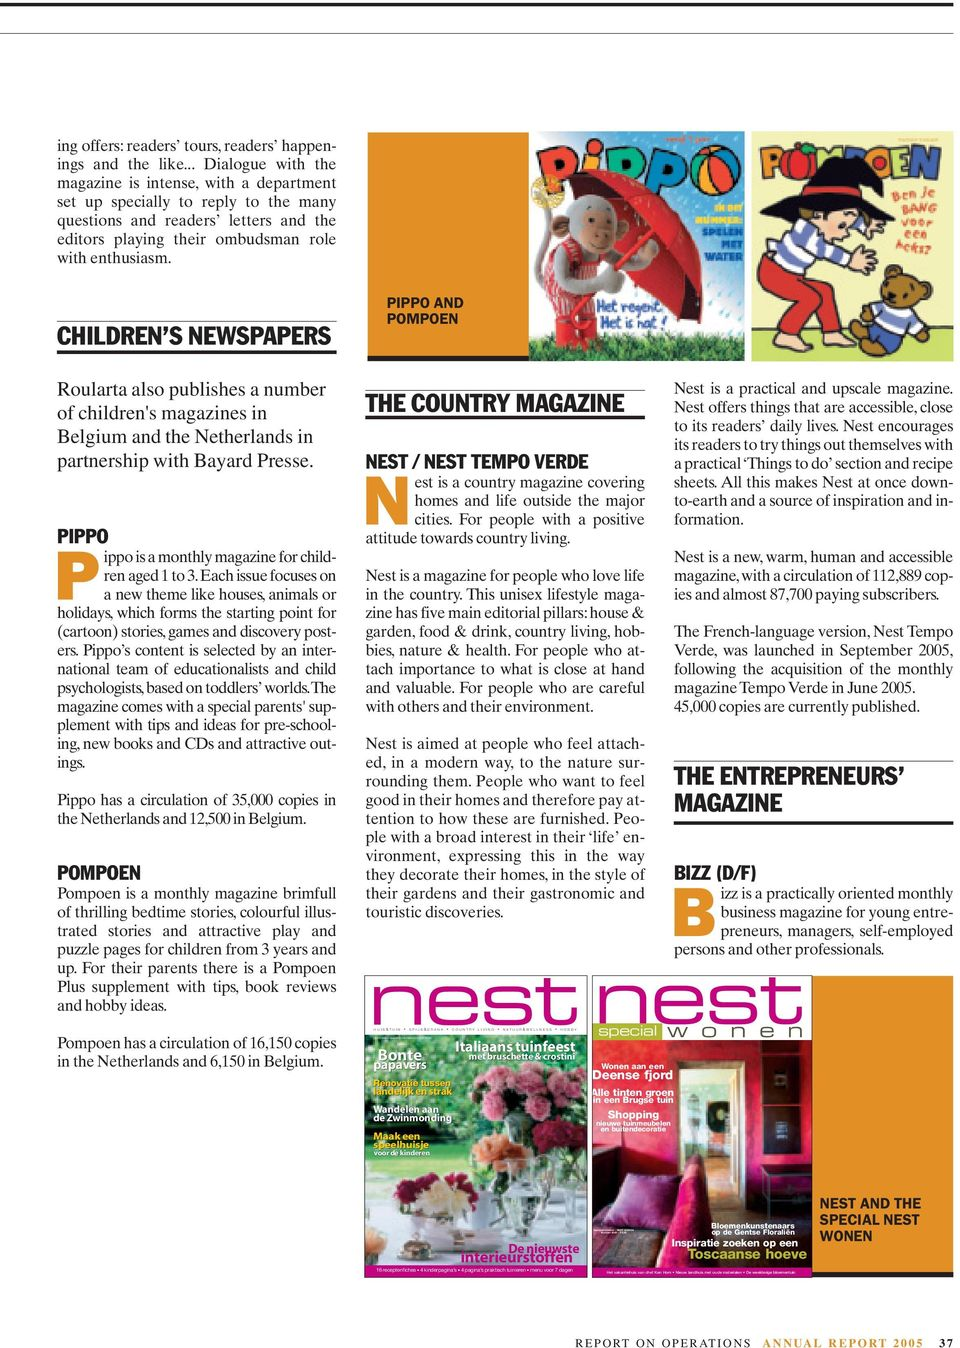 CHILDREN S NEWSPAPERS Roularta also publishes a number of children's magazines in Belgium and the Netherlands in partnership with Bayard Presse.